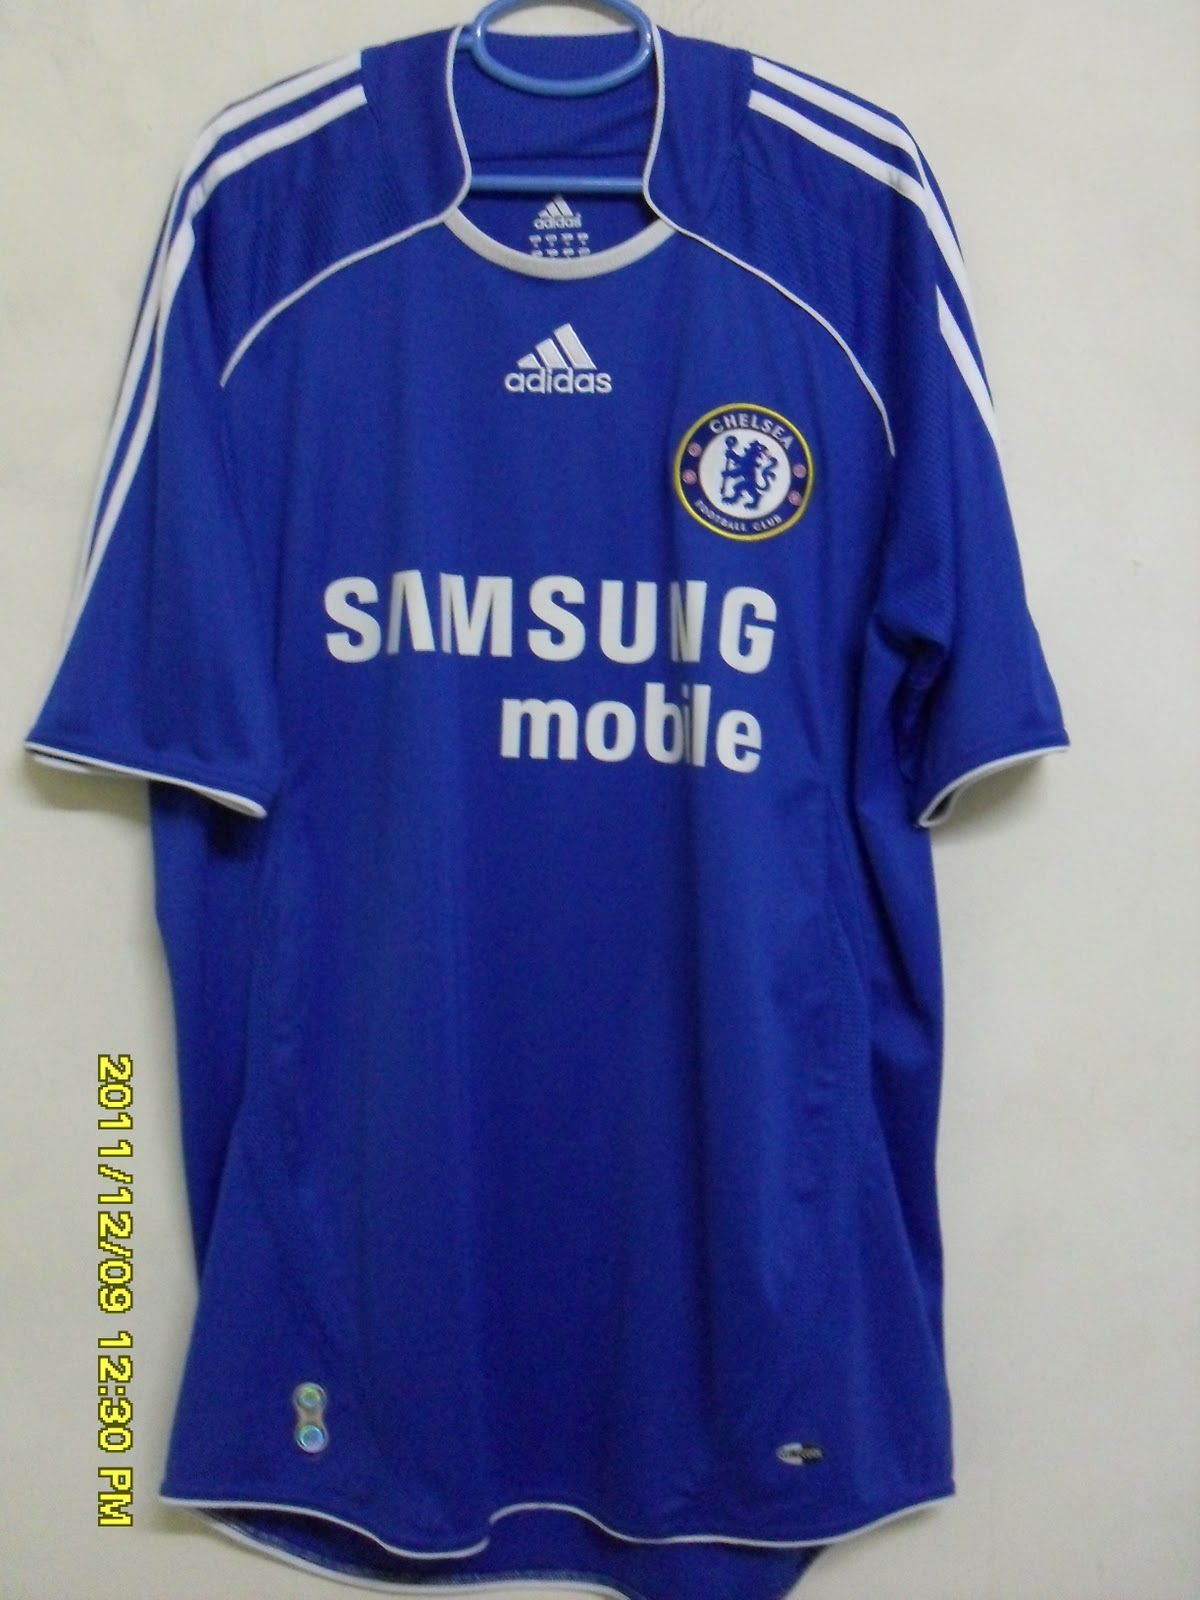 new product ea9af ebe41 My Football Jersey Collections: #19 Chelsea FC (Home, 2006 ...